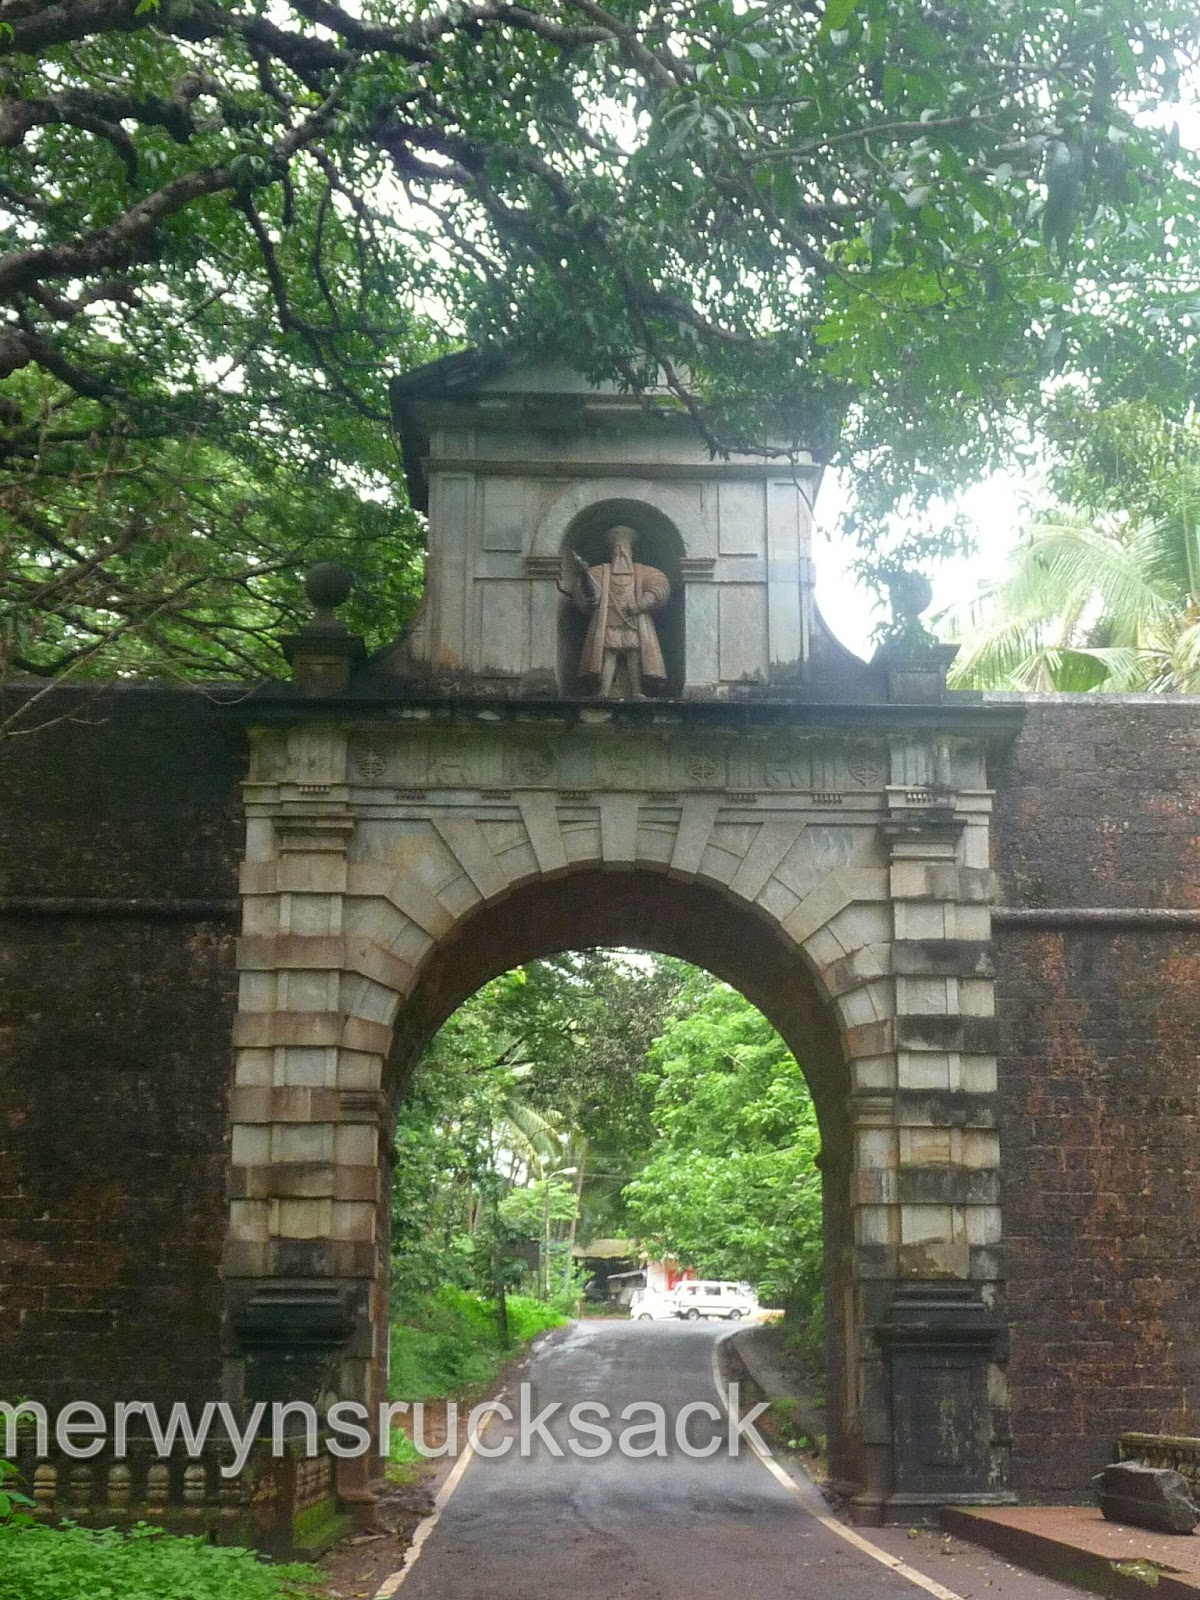 Viceroy's Arch Old Goa, Goa - Viceroy Arch in Old Goa | The journey of a thousand miles ...